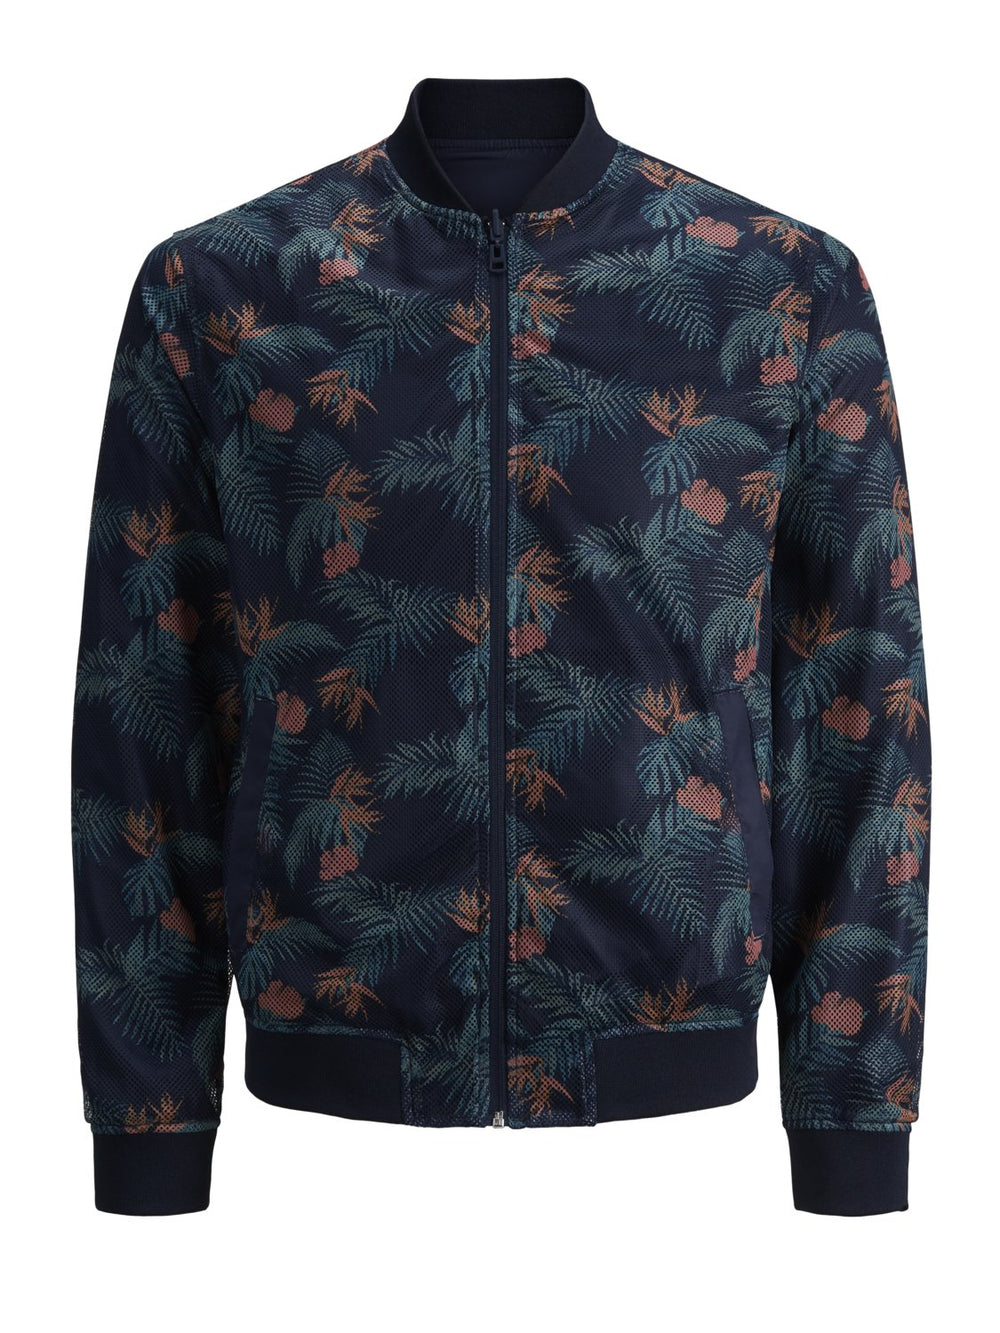 BOMBER JACKET RÉVERSIBLE, JACK & JONES